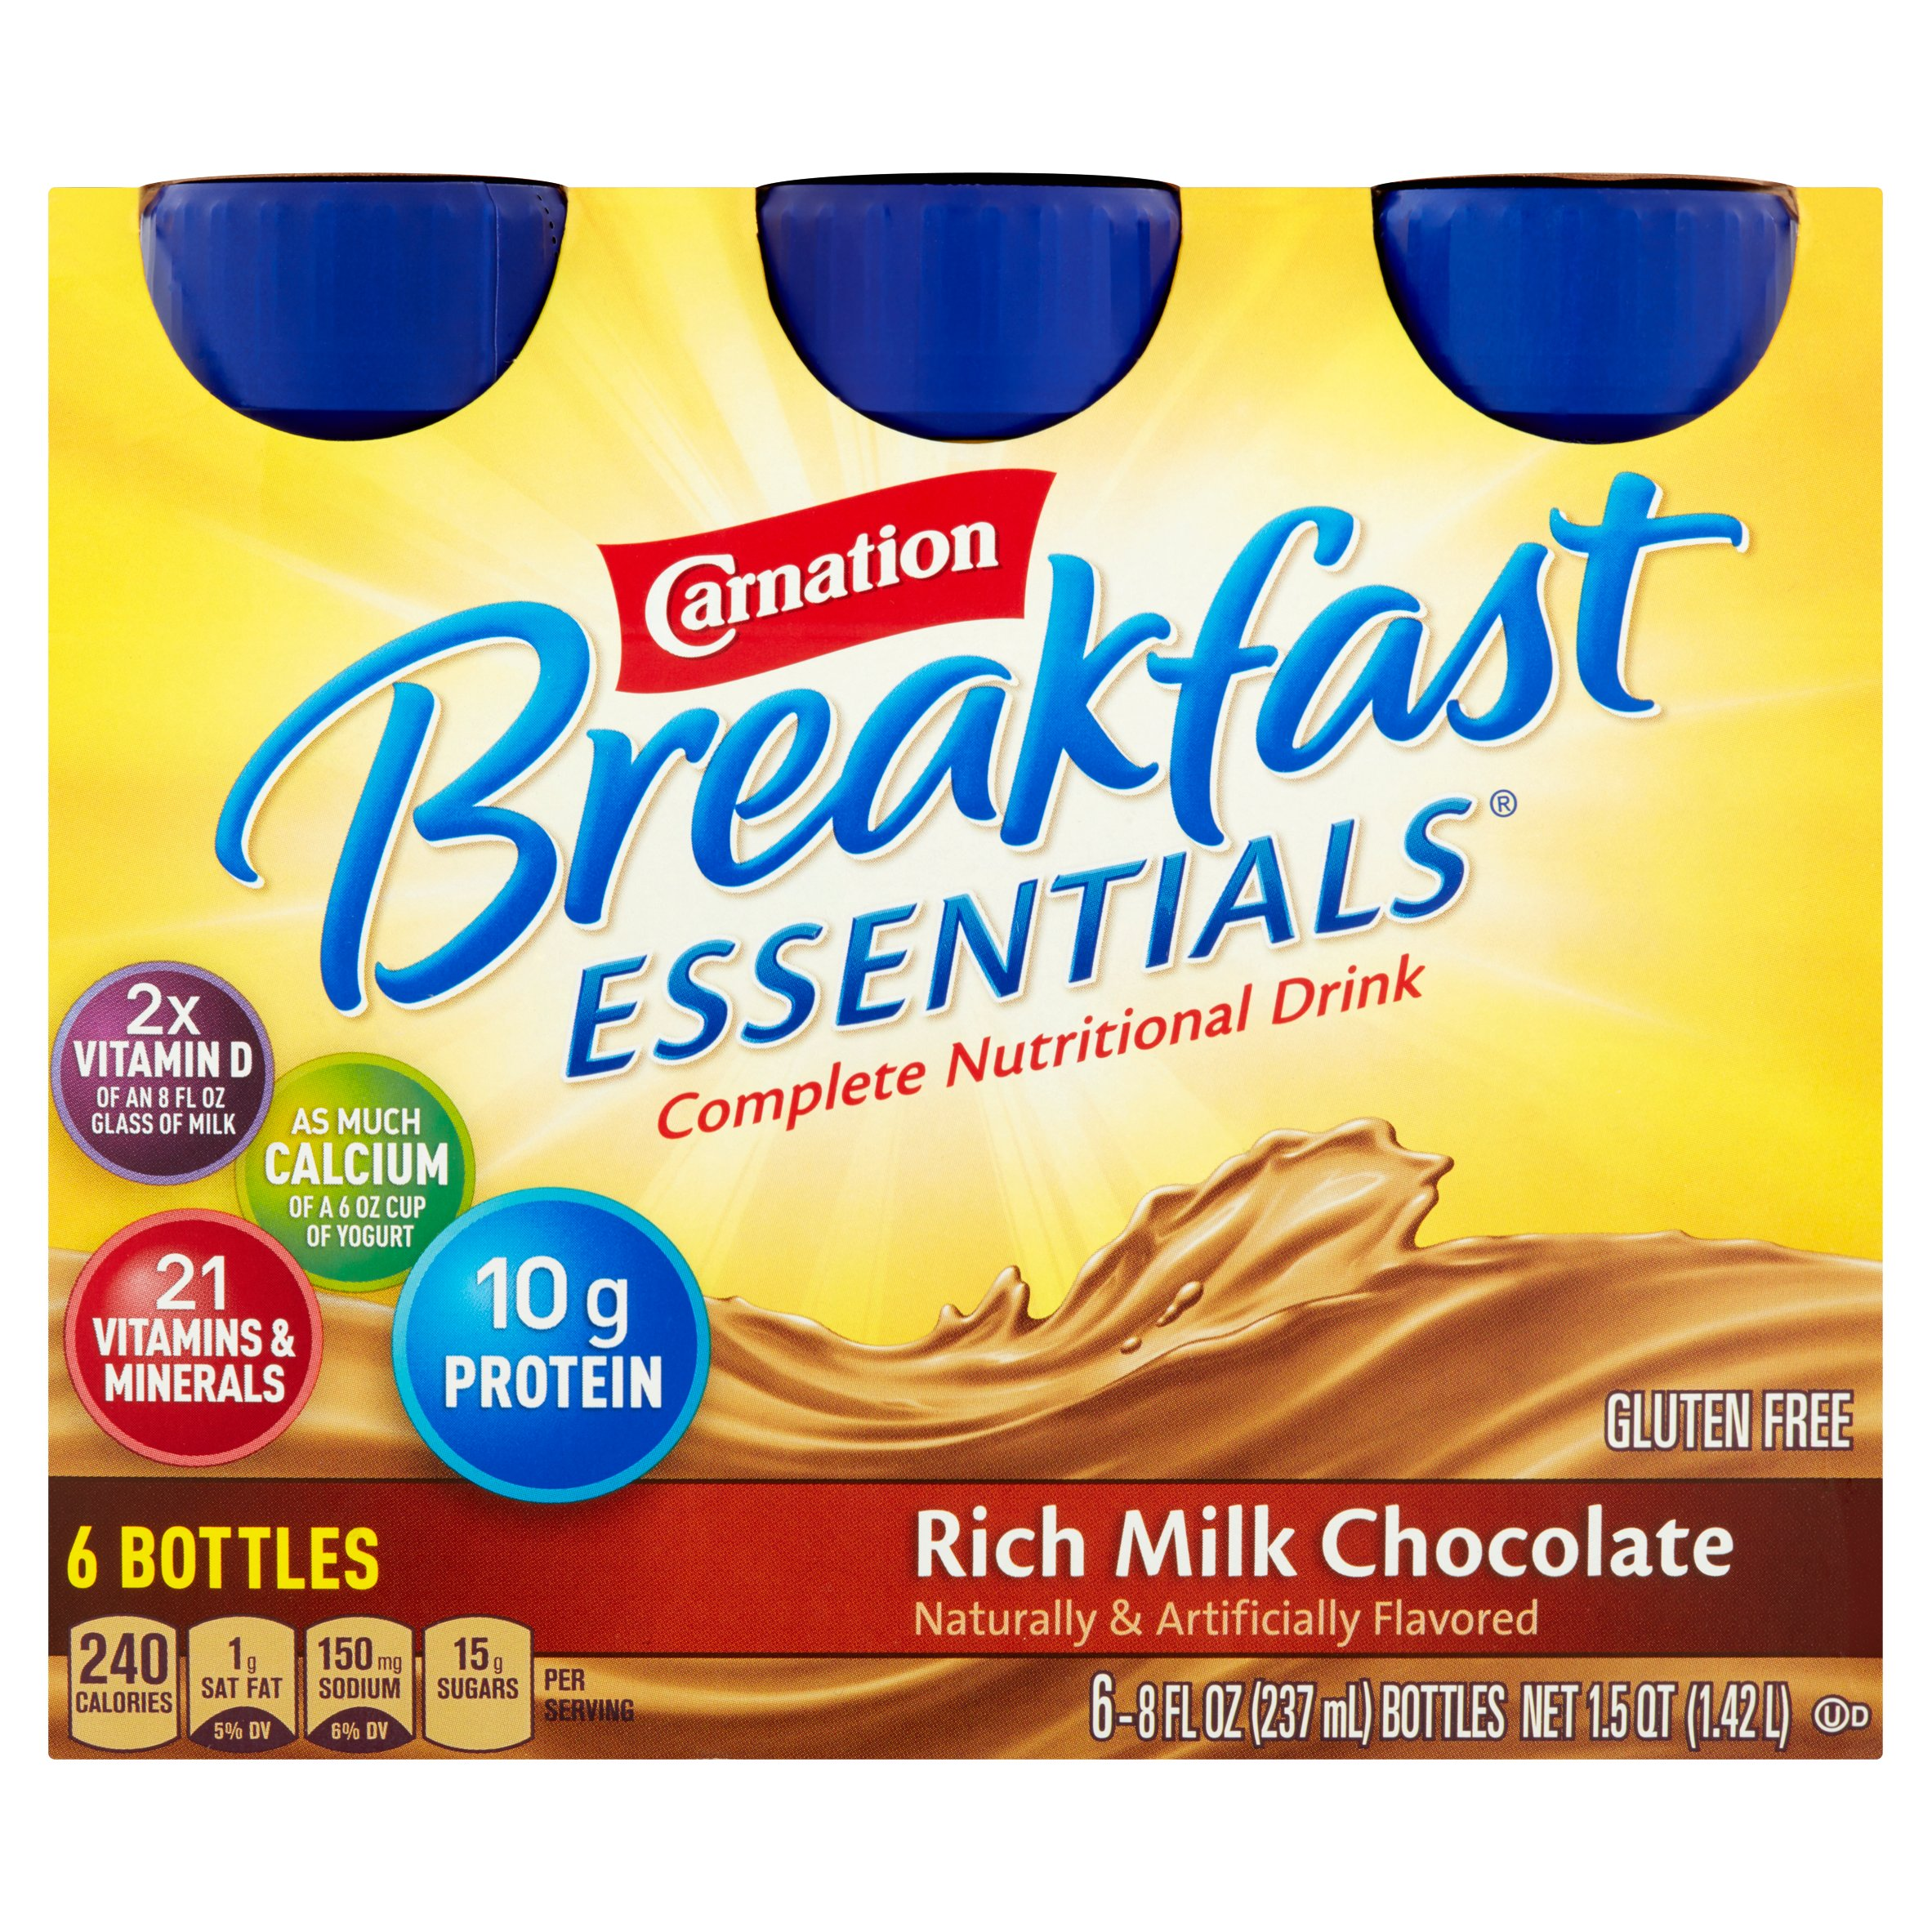 Carnation Breakfast Essentials Rich Milk Chocolate Complete Nutritional Drink, 8 fl oz, 6 count